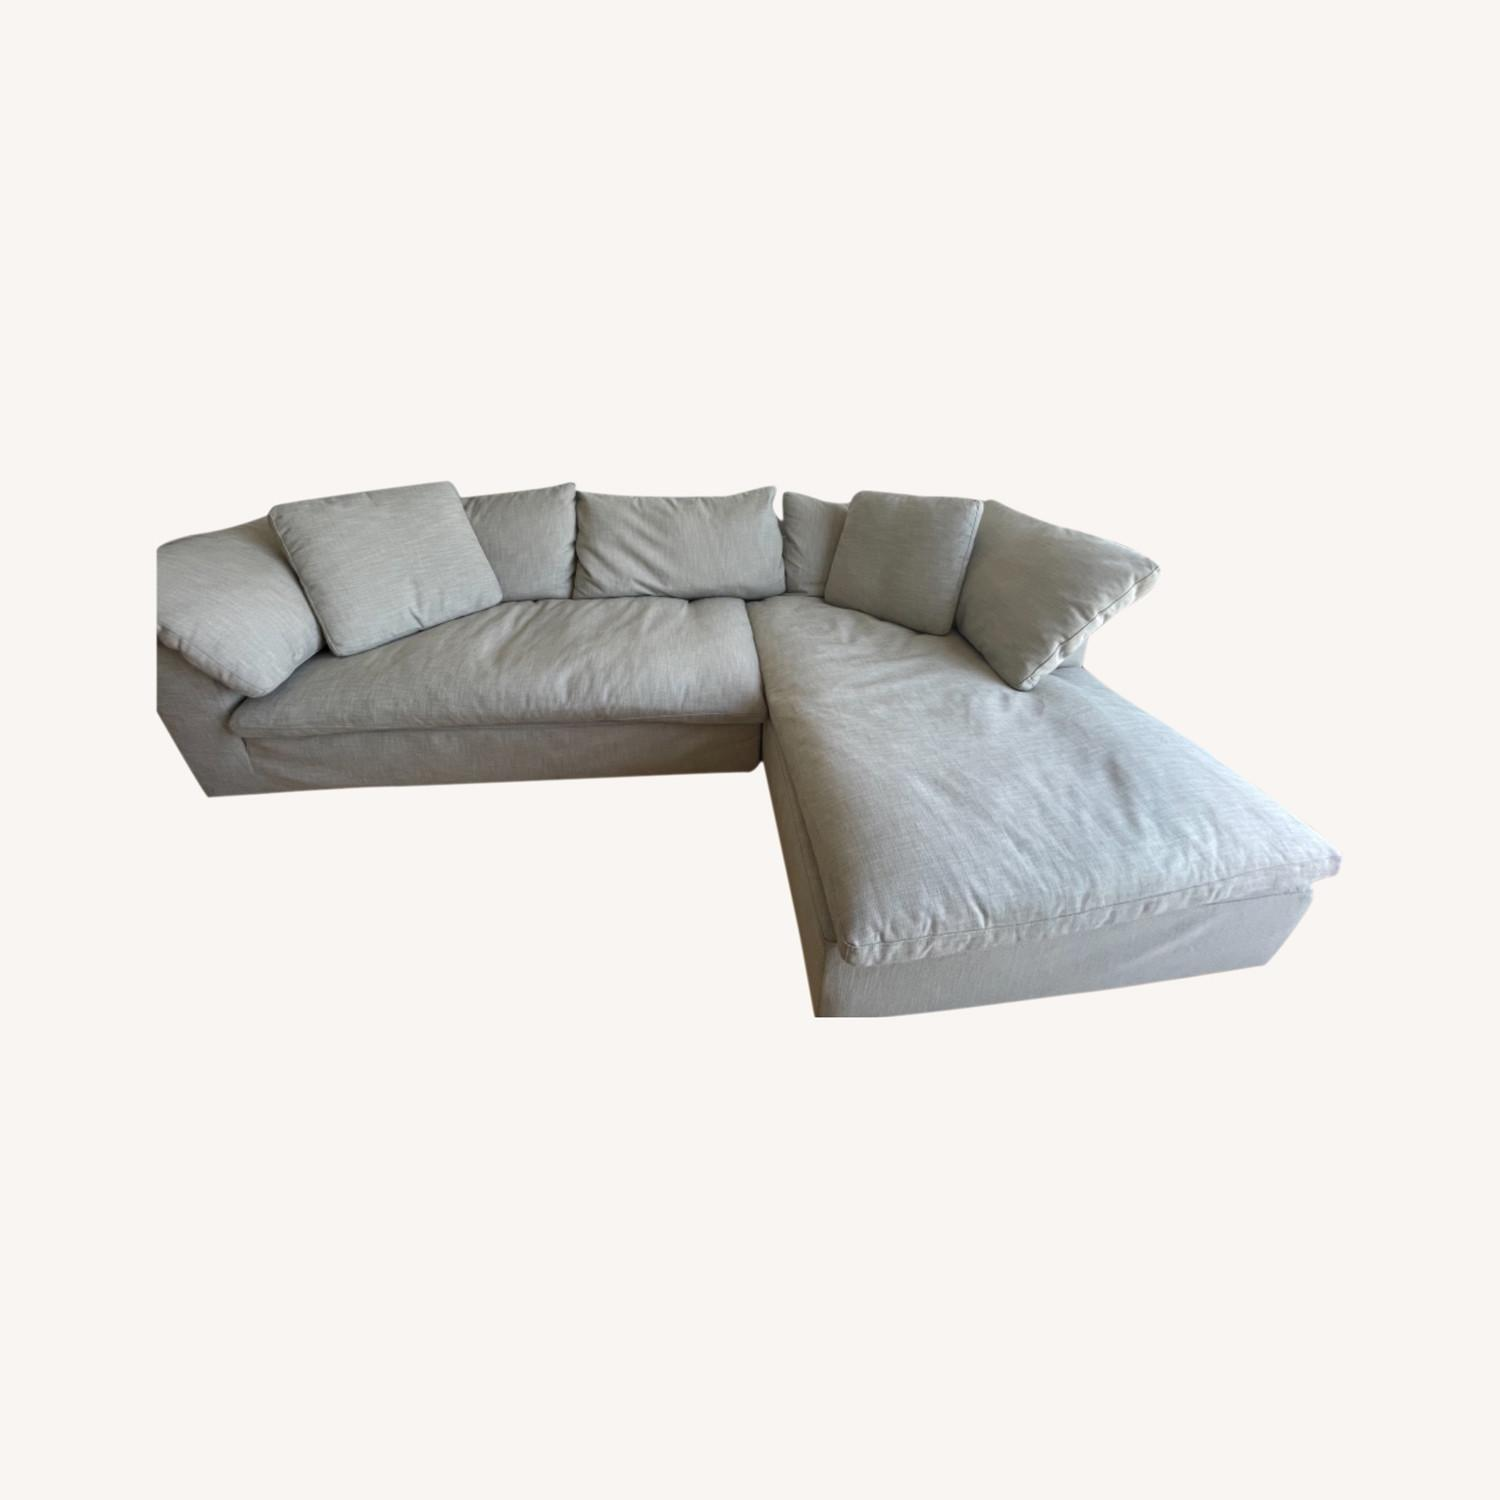 Restoration Hardware Cloud Couch - image-0